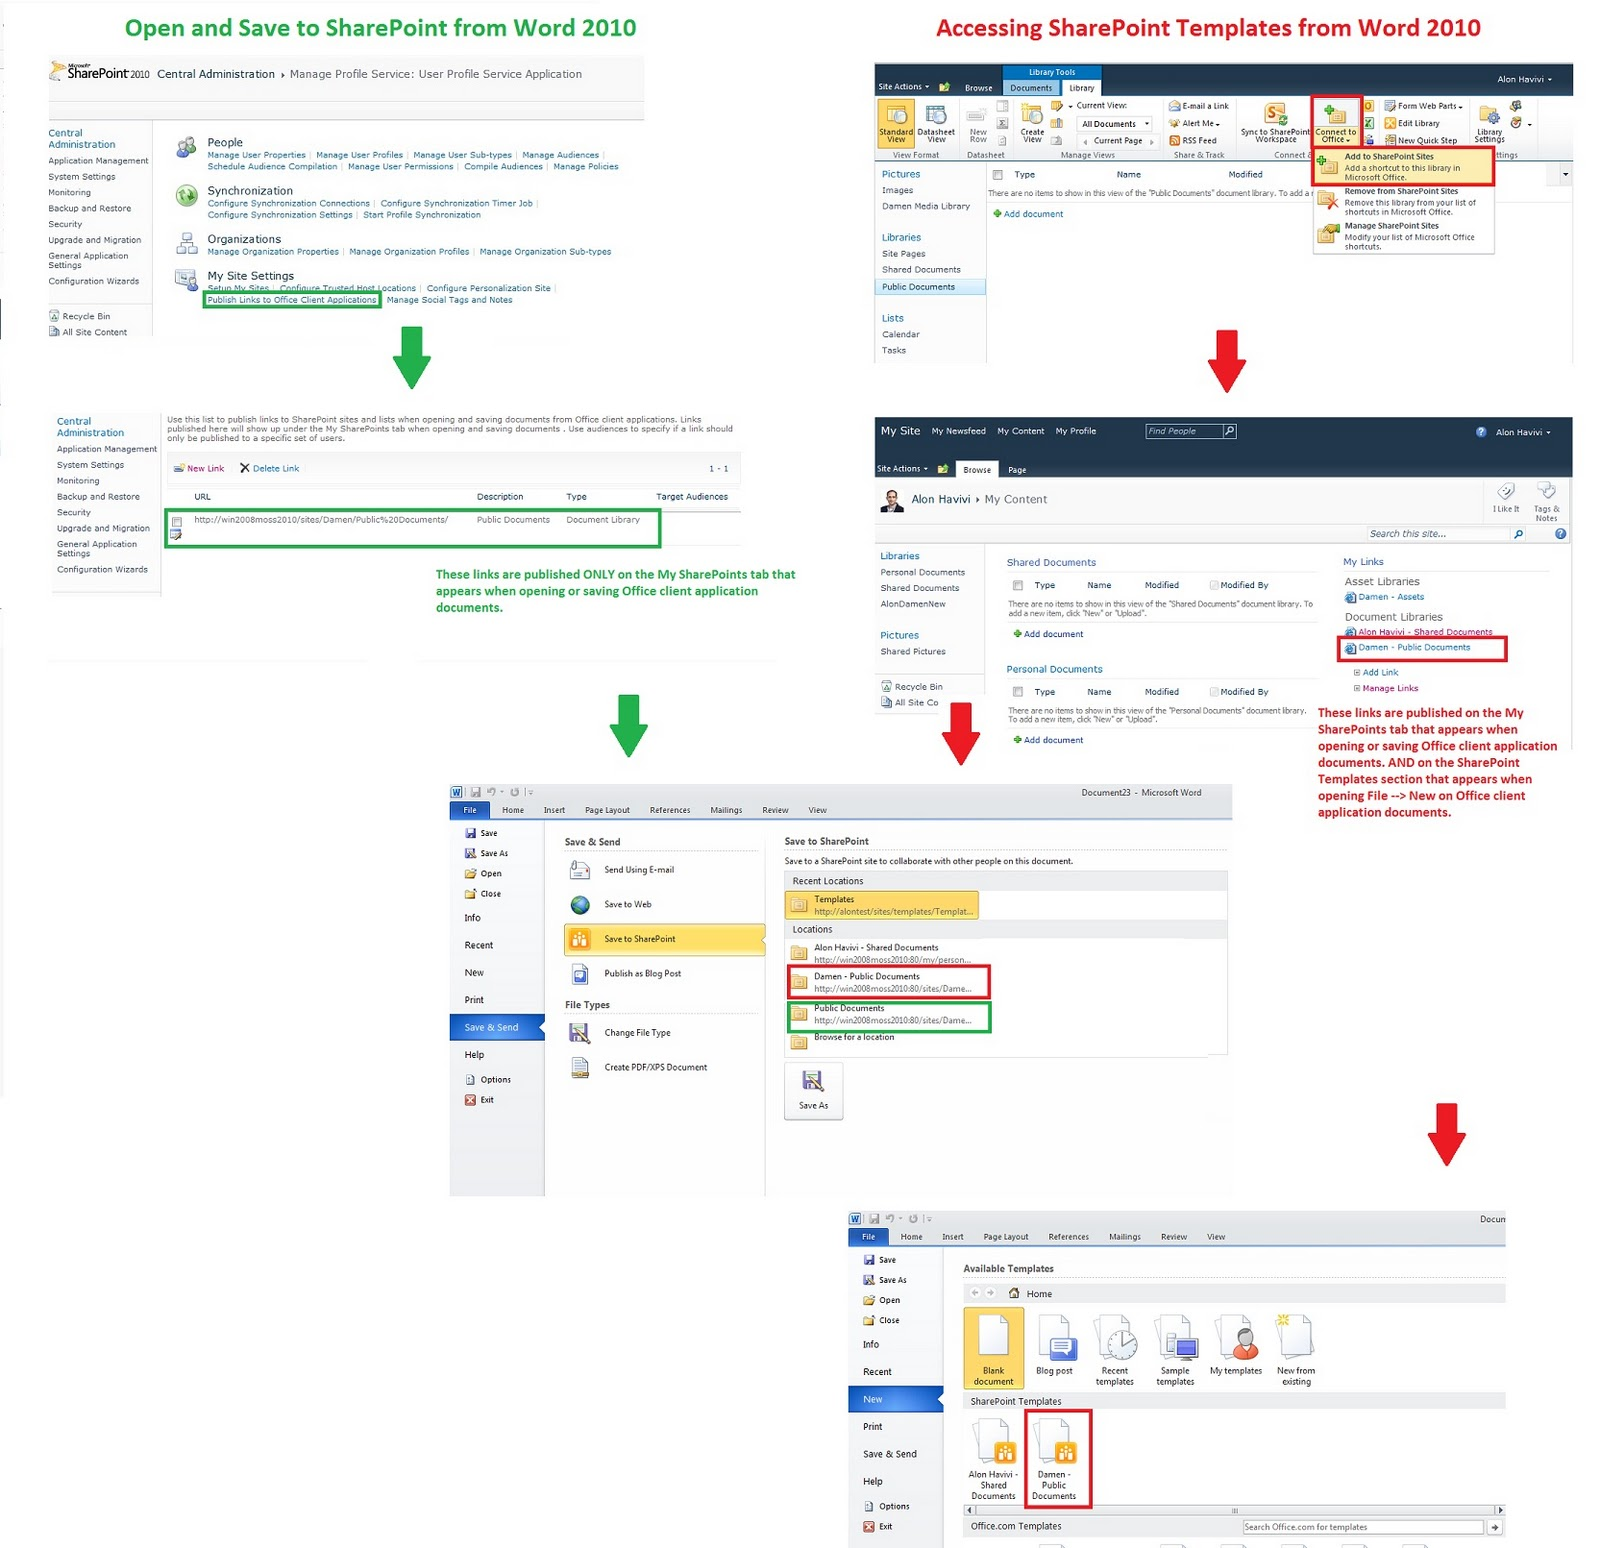 Access sharepoint templates from Office client application - Alon ...